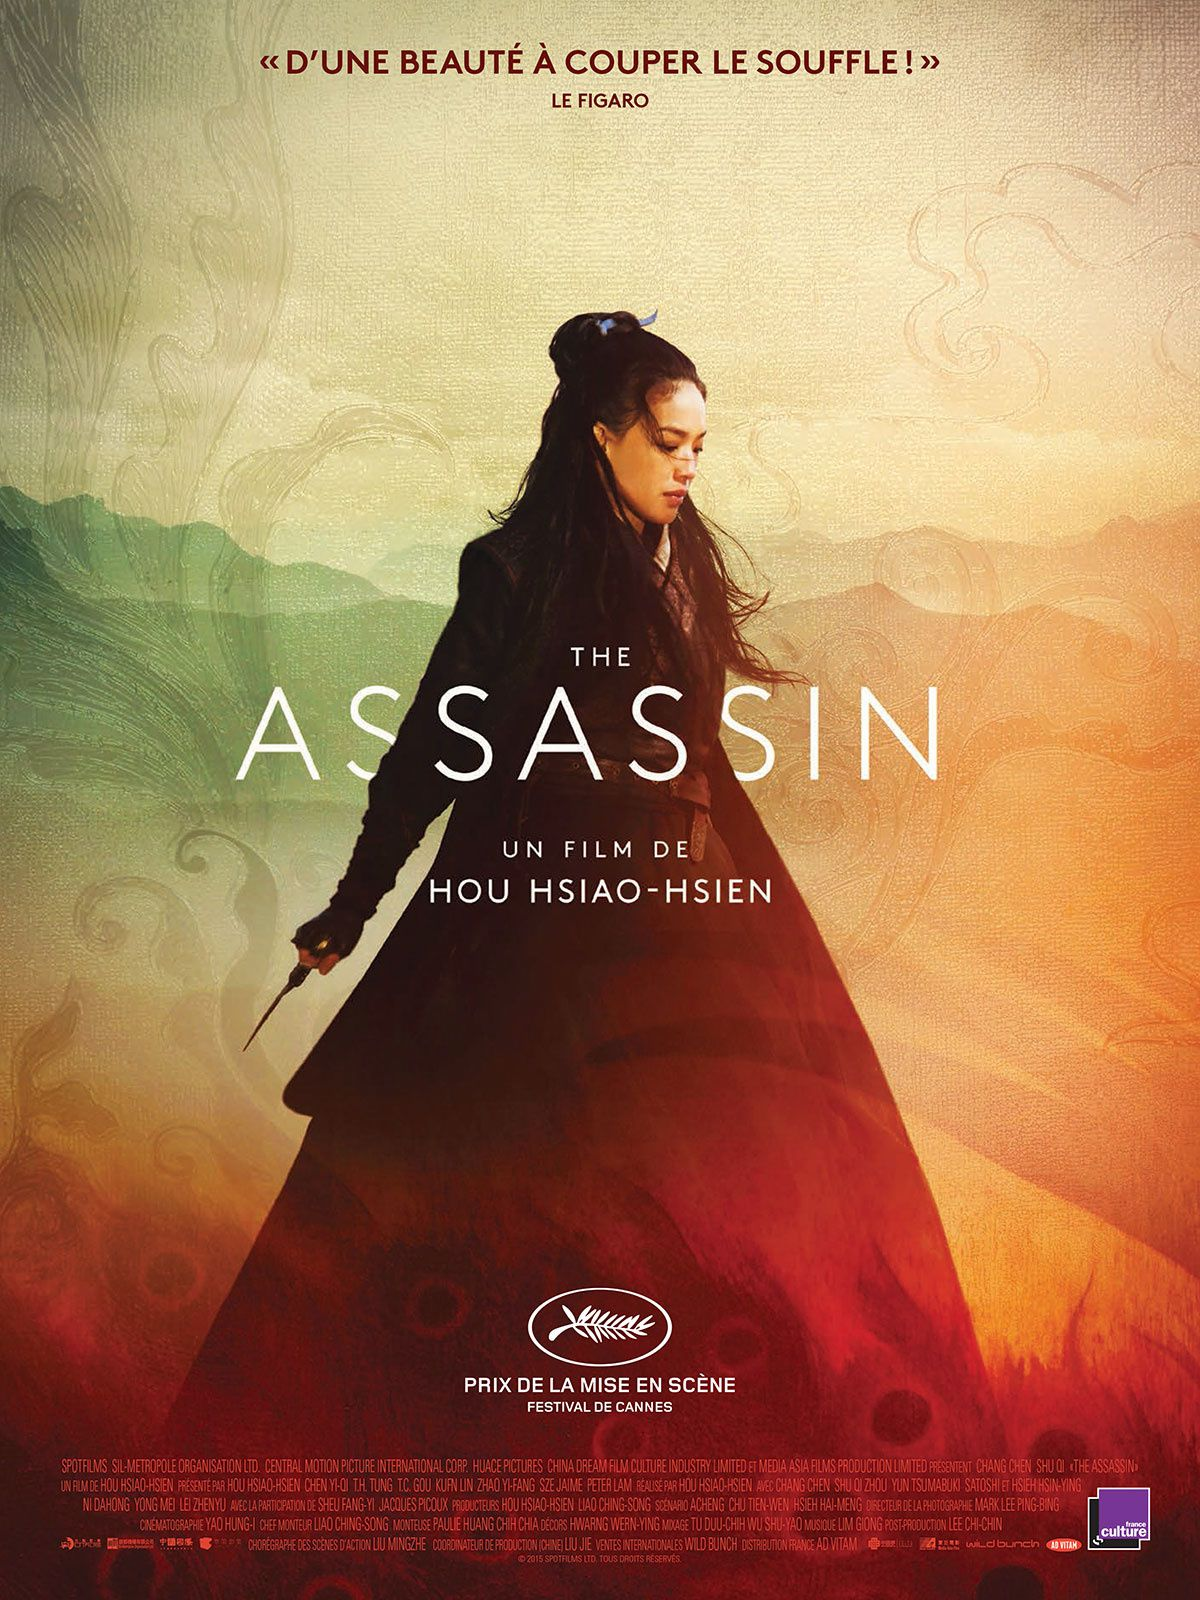 3) The Assassin (Hou Hsiao-Hsien)